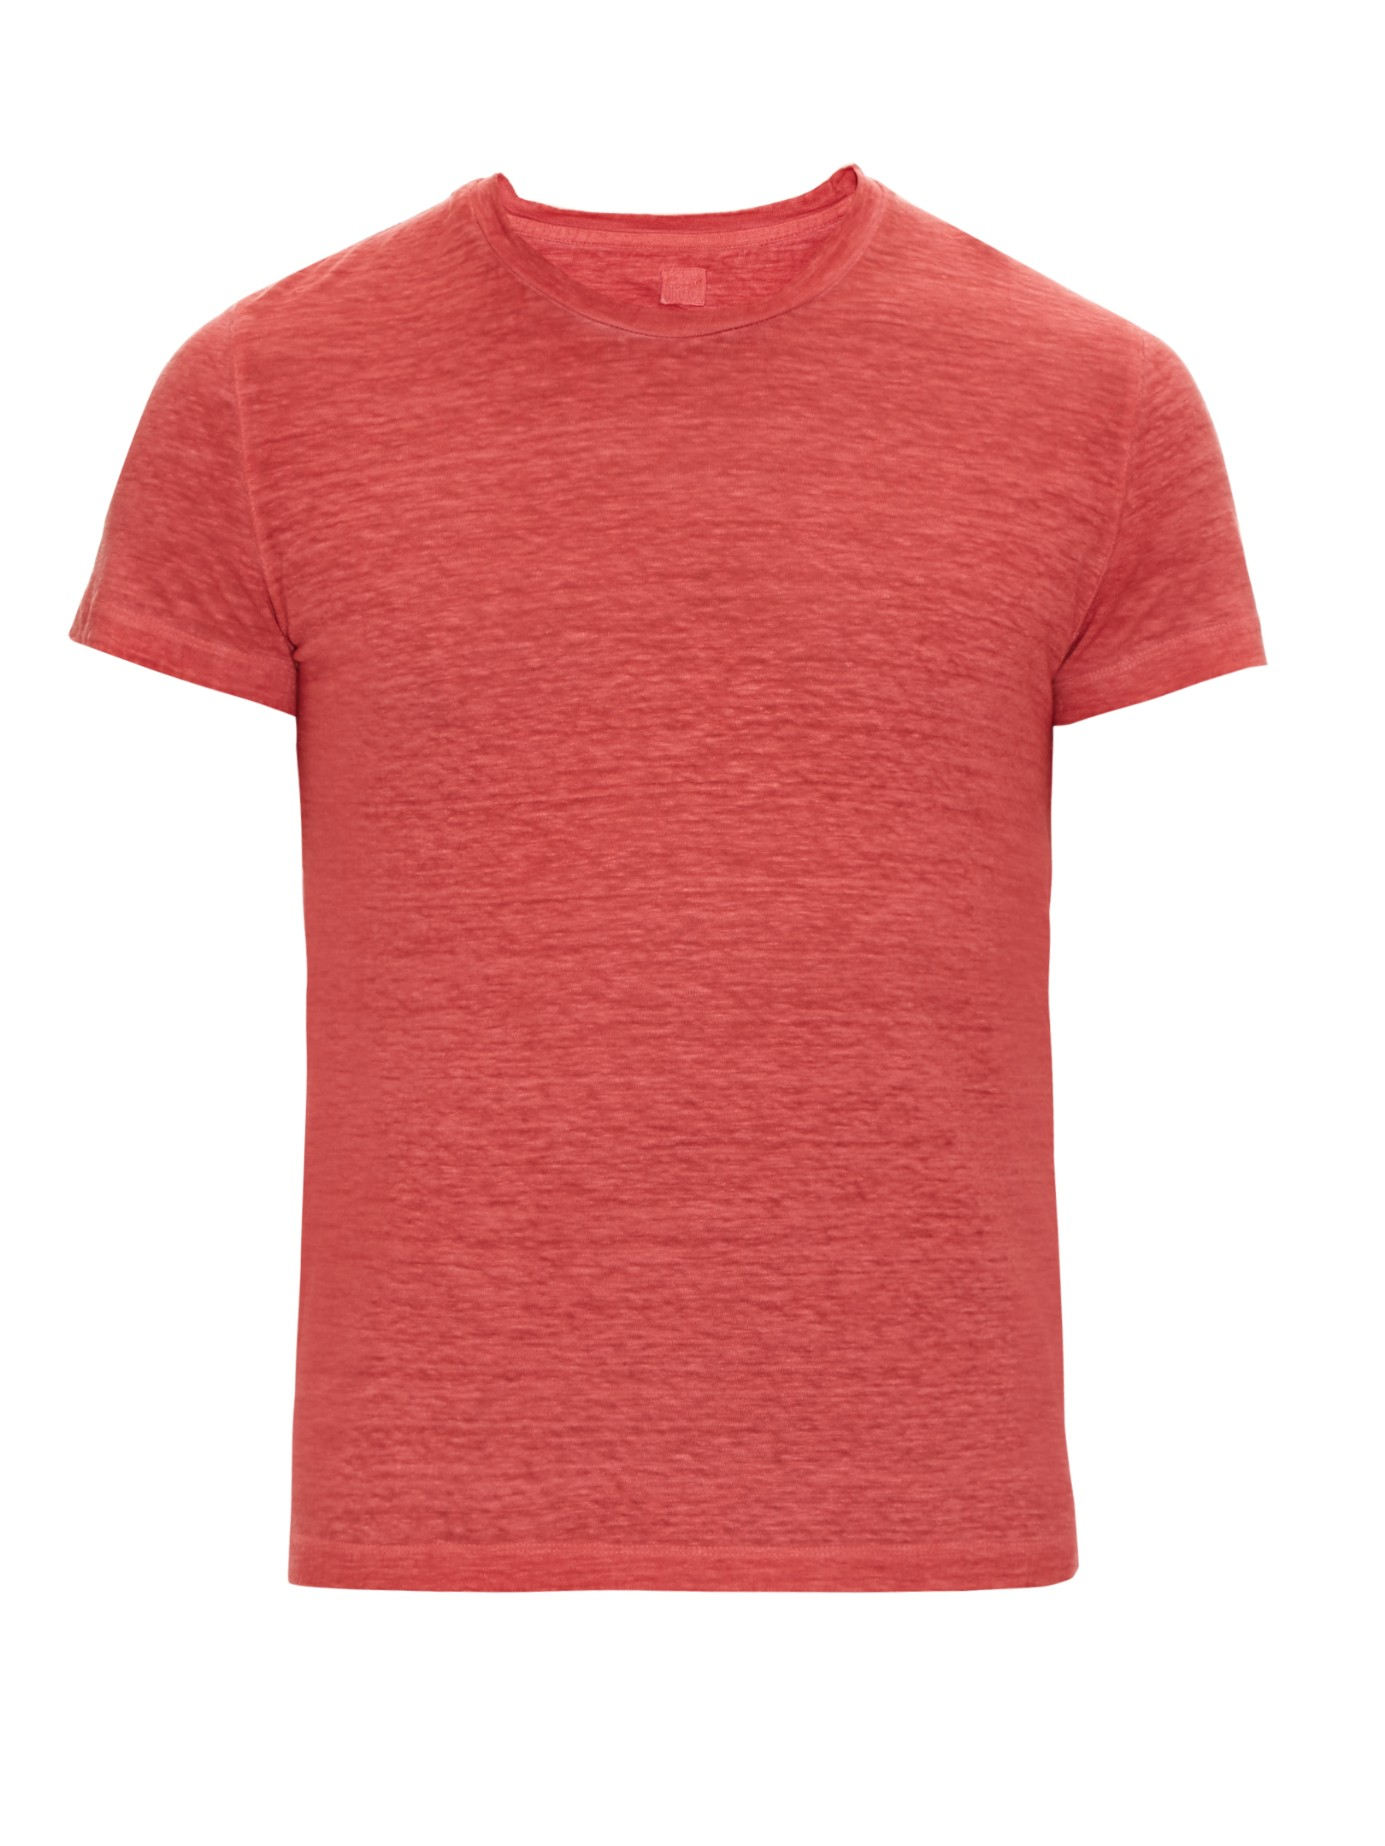 120 Lino Crew Neck Linen T Shirt In Red For Men Lyst